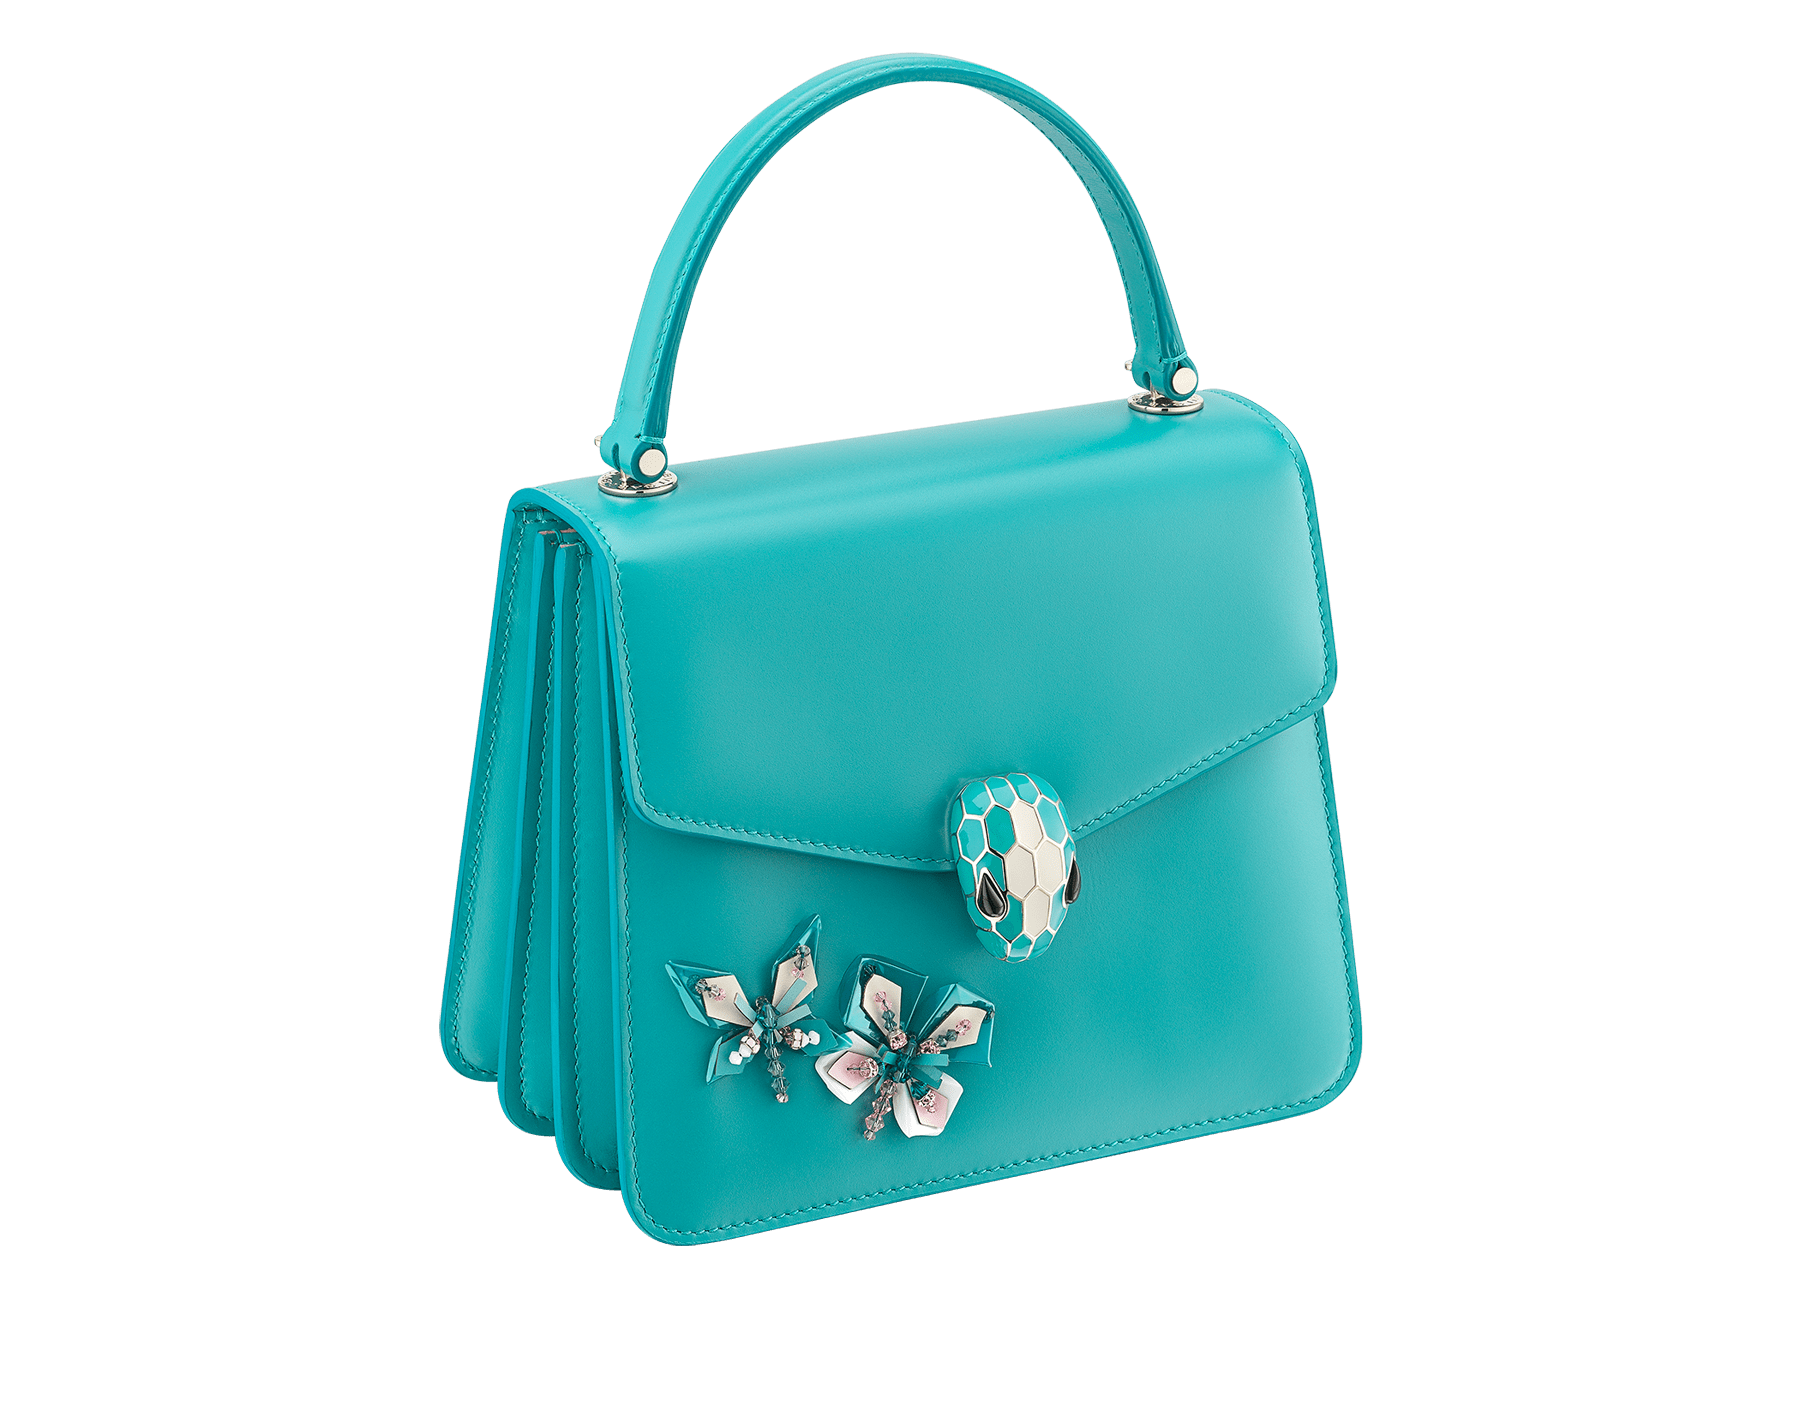 """""""Serpenti Forever """" crossbody bag in arctic jade calf leather with two arctic jade butterflies embroidered. Iconic snakehead closure in light gold plated brass enriched with arctic jade and white agate enamel and black onyx eyes. 289249 image 2"""